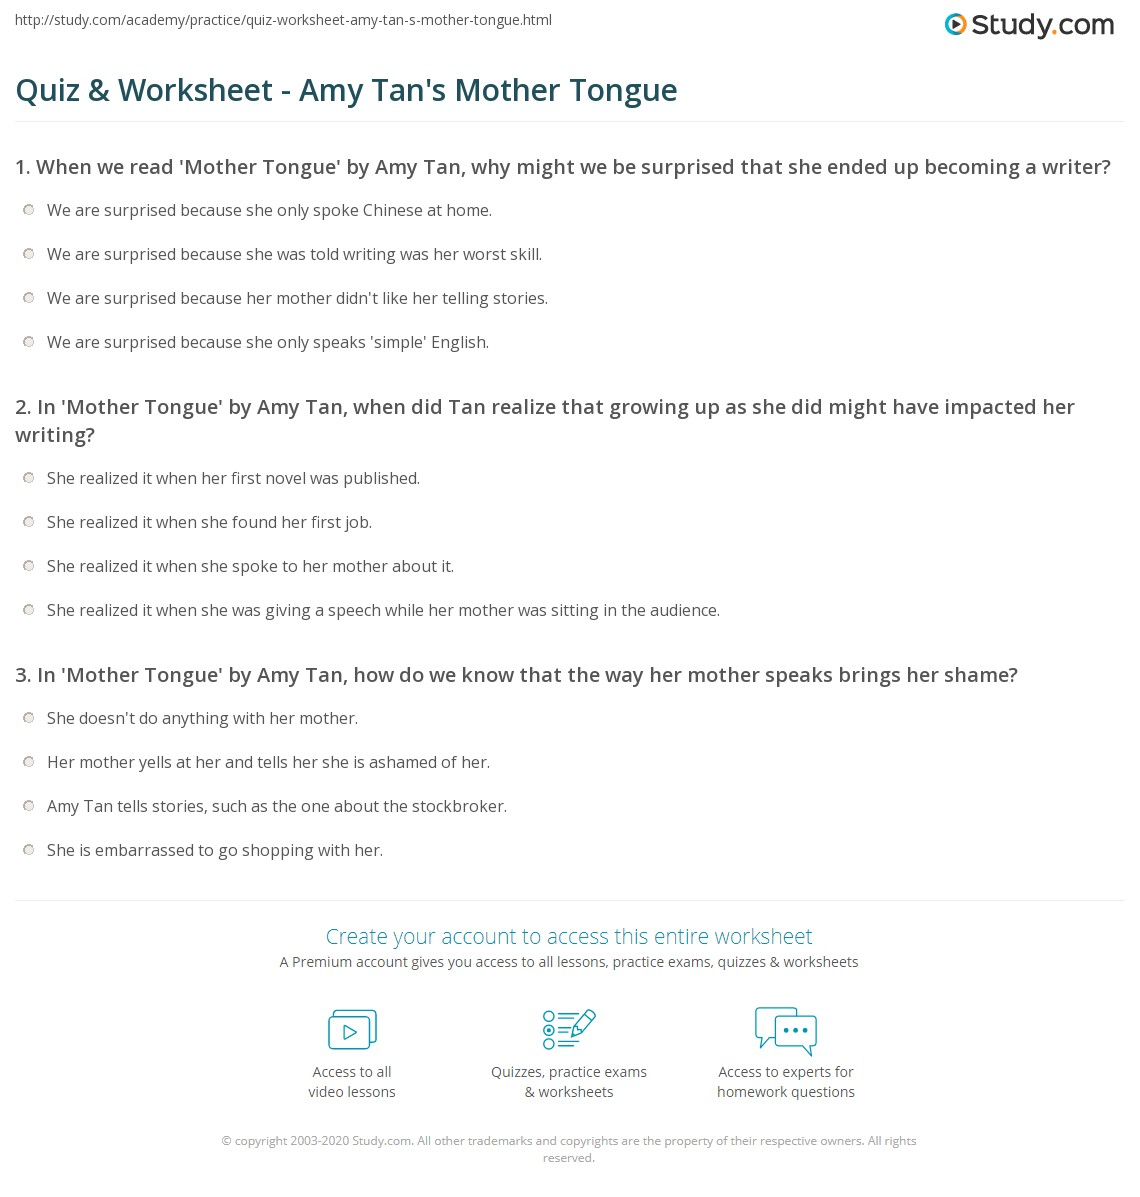 mother tongue amy tan full text amy tan quotes quotefancy nintendo  quiz worksheet amy tan s mother tongue com print amy tan s mother tongue summary themes